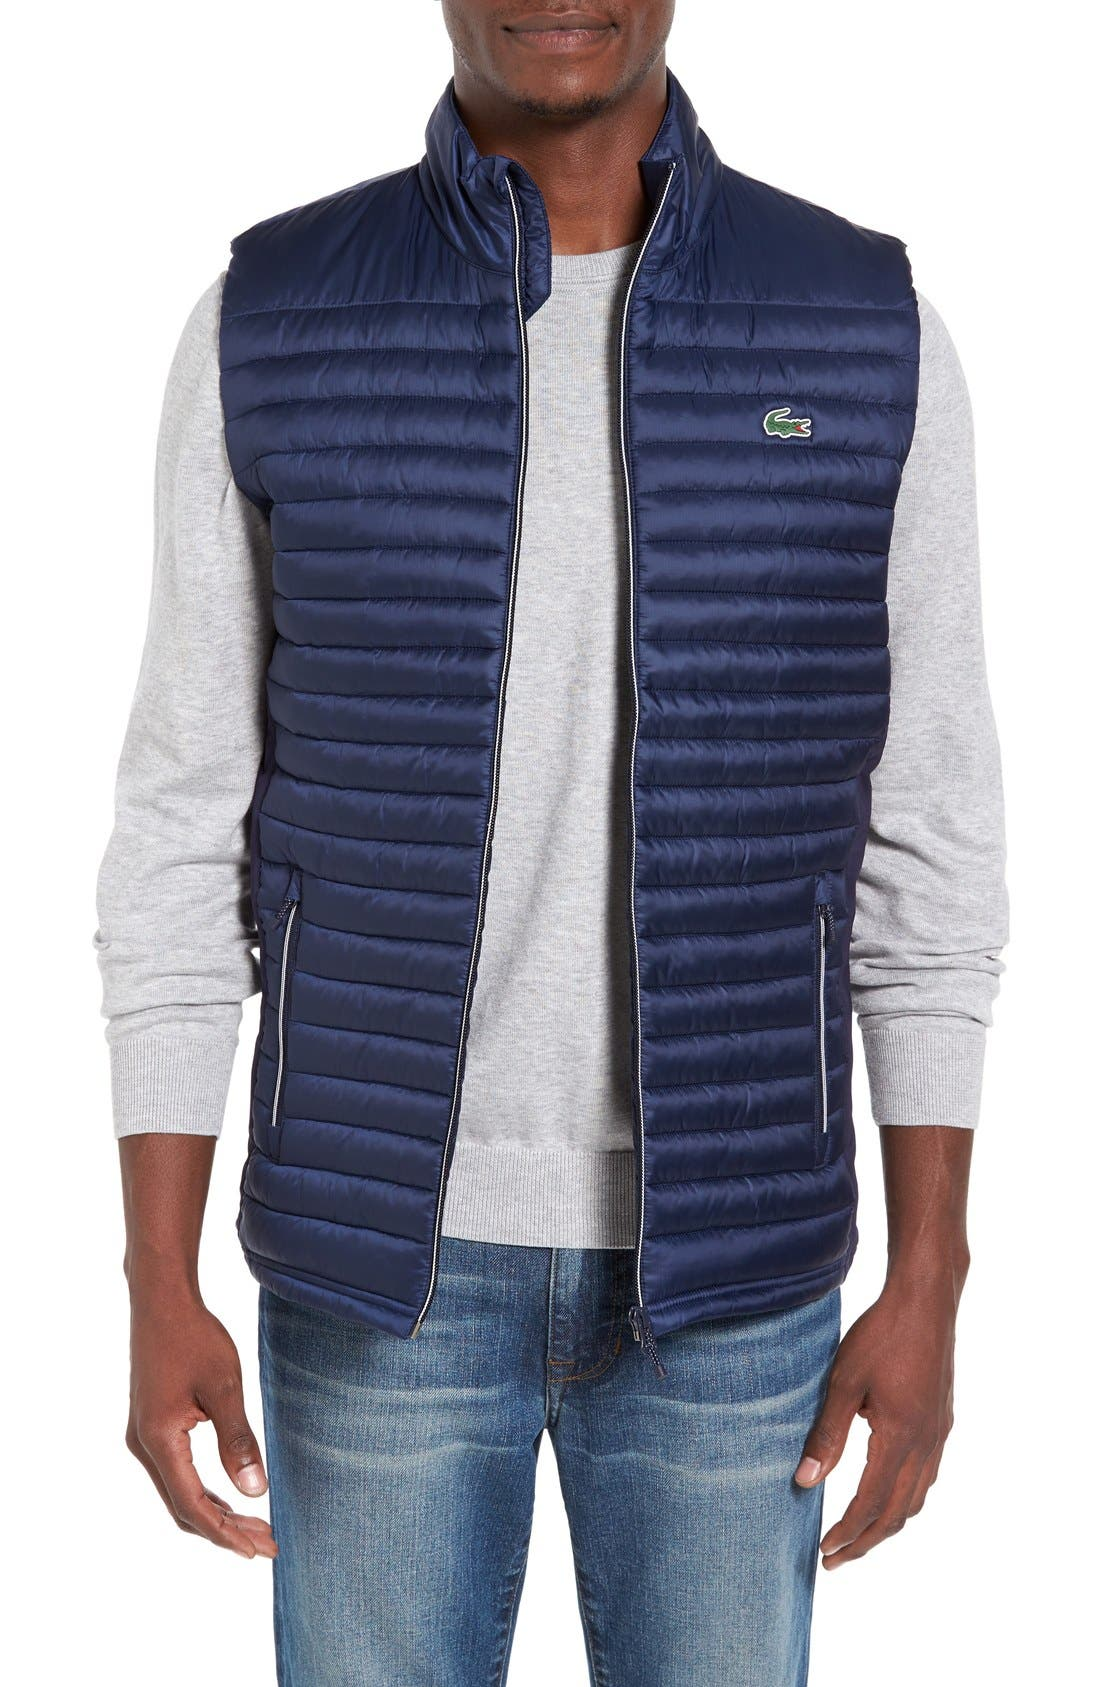 Main Image - Lacoste 'Sport' Insulated Vest